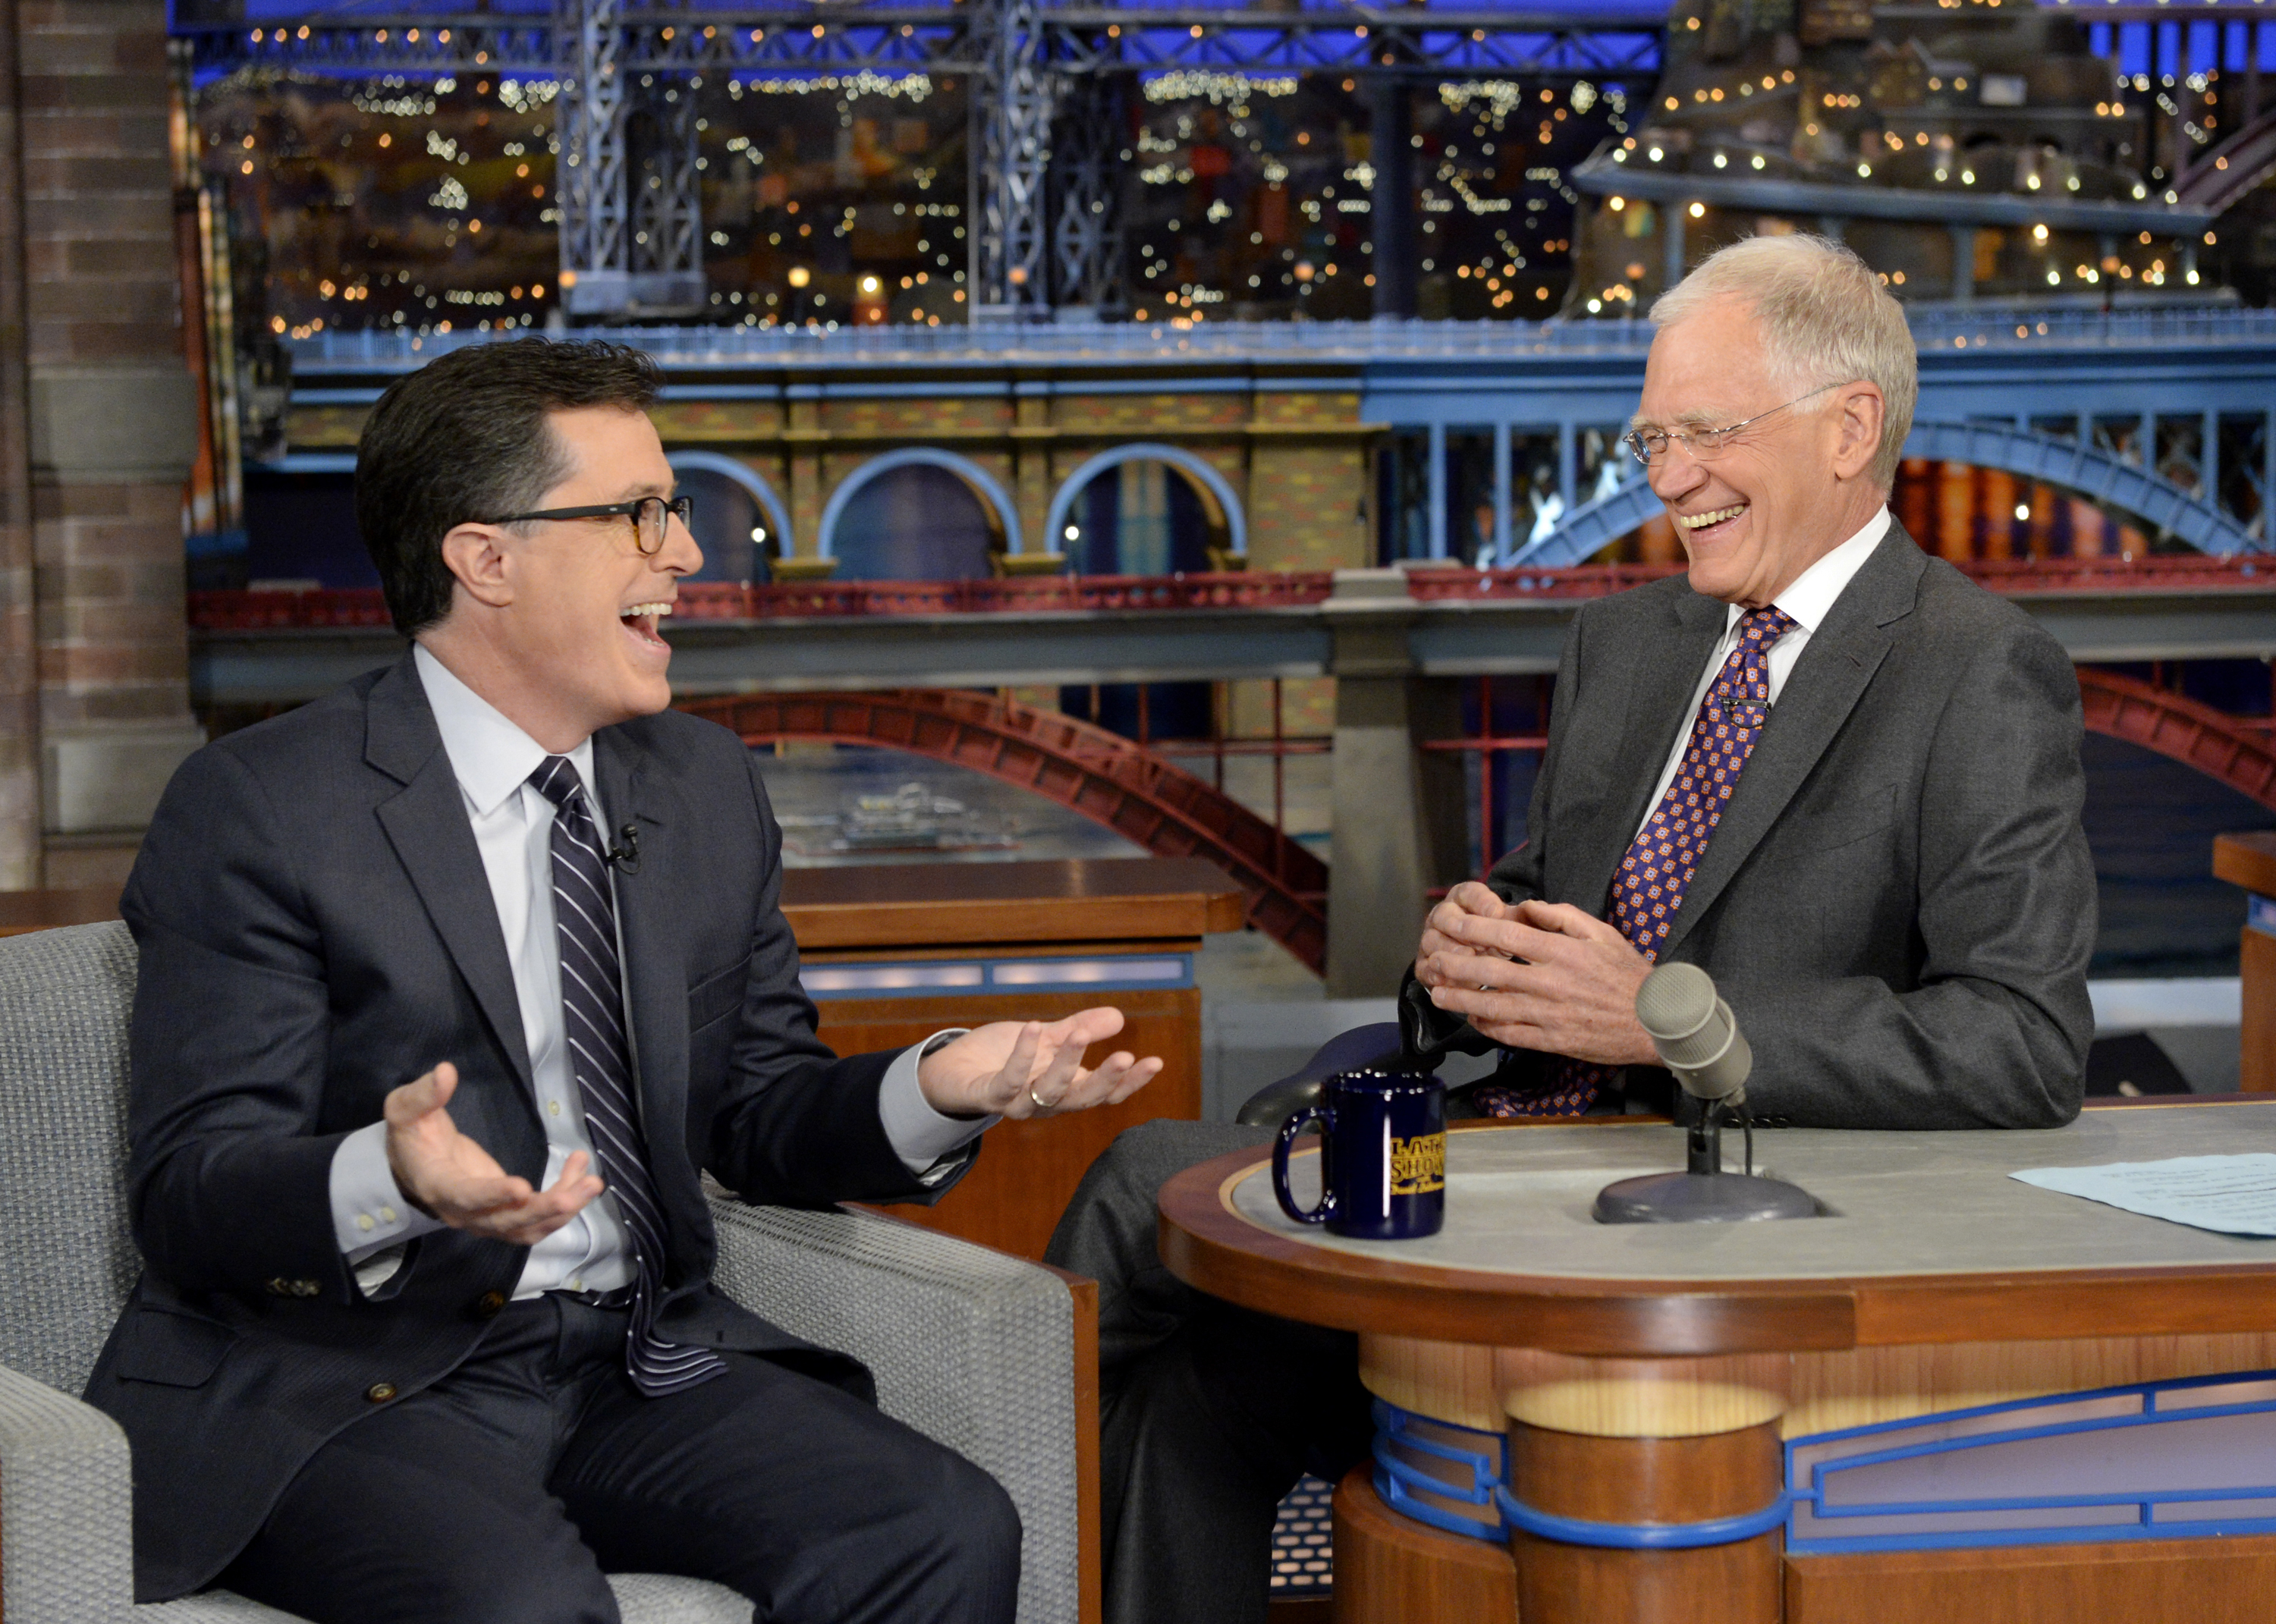 Stephen Colbert talks to David Letterman when Colbert visits the Late Show